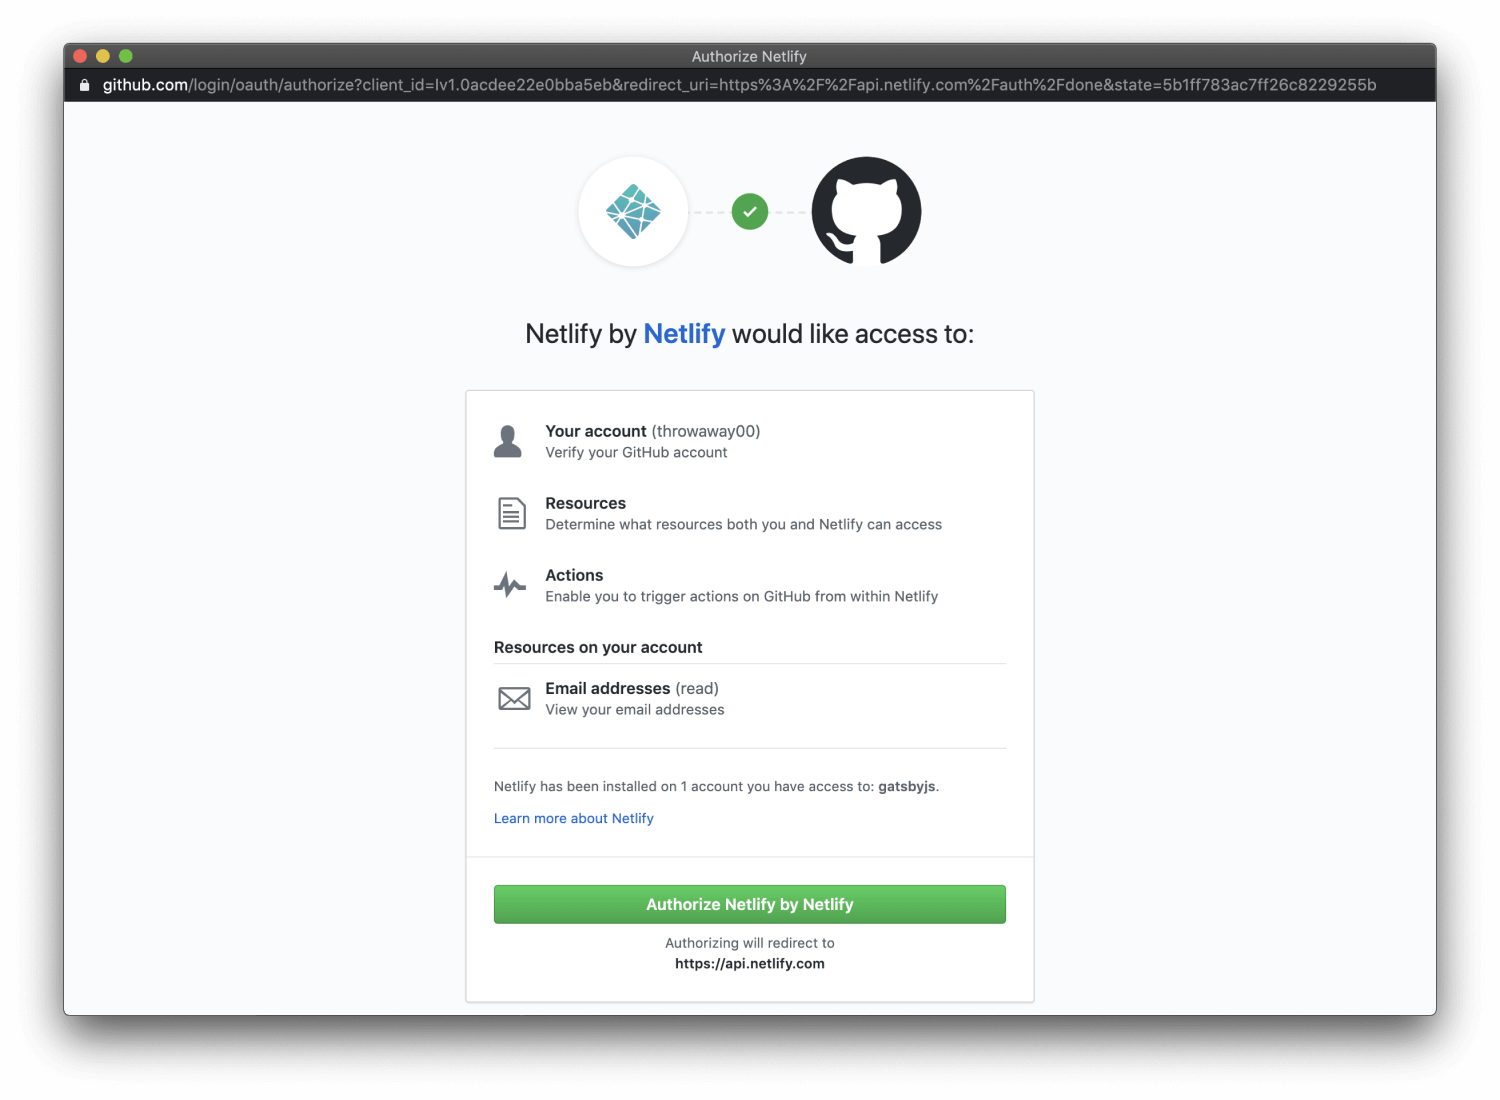 step 3 - authorize auth Netlify app